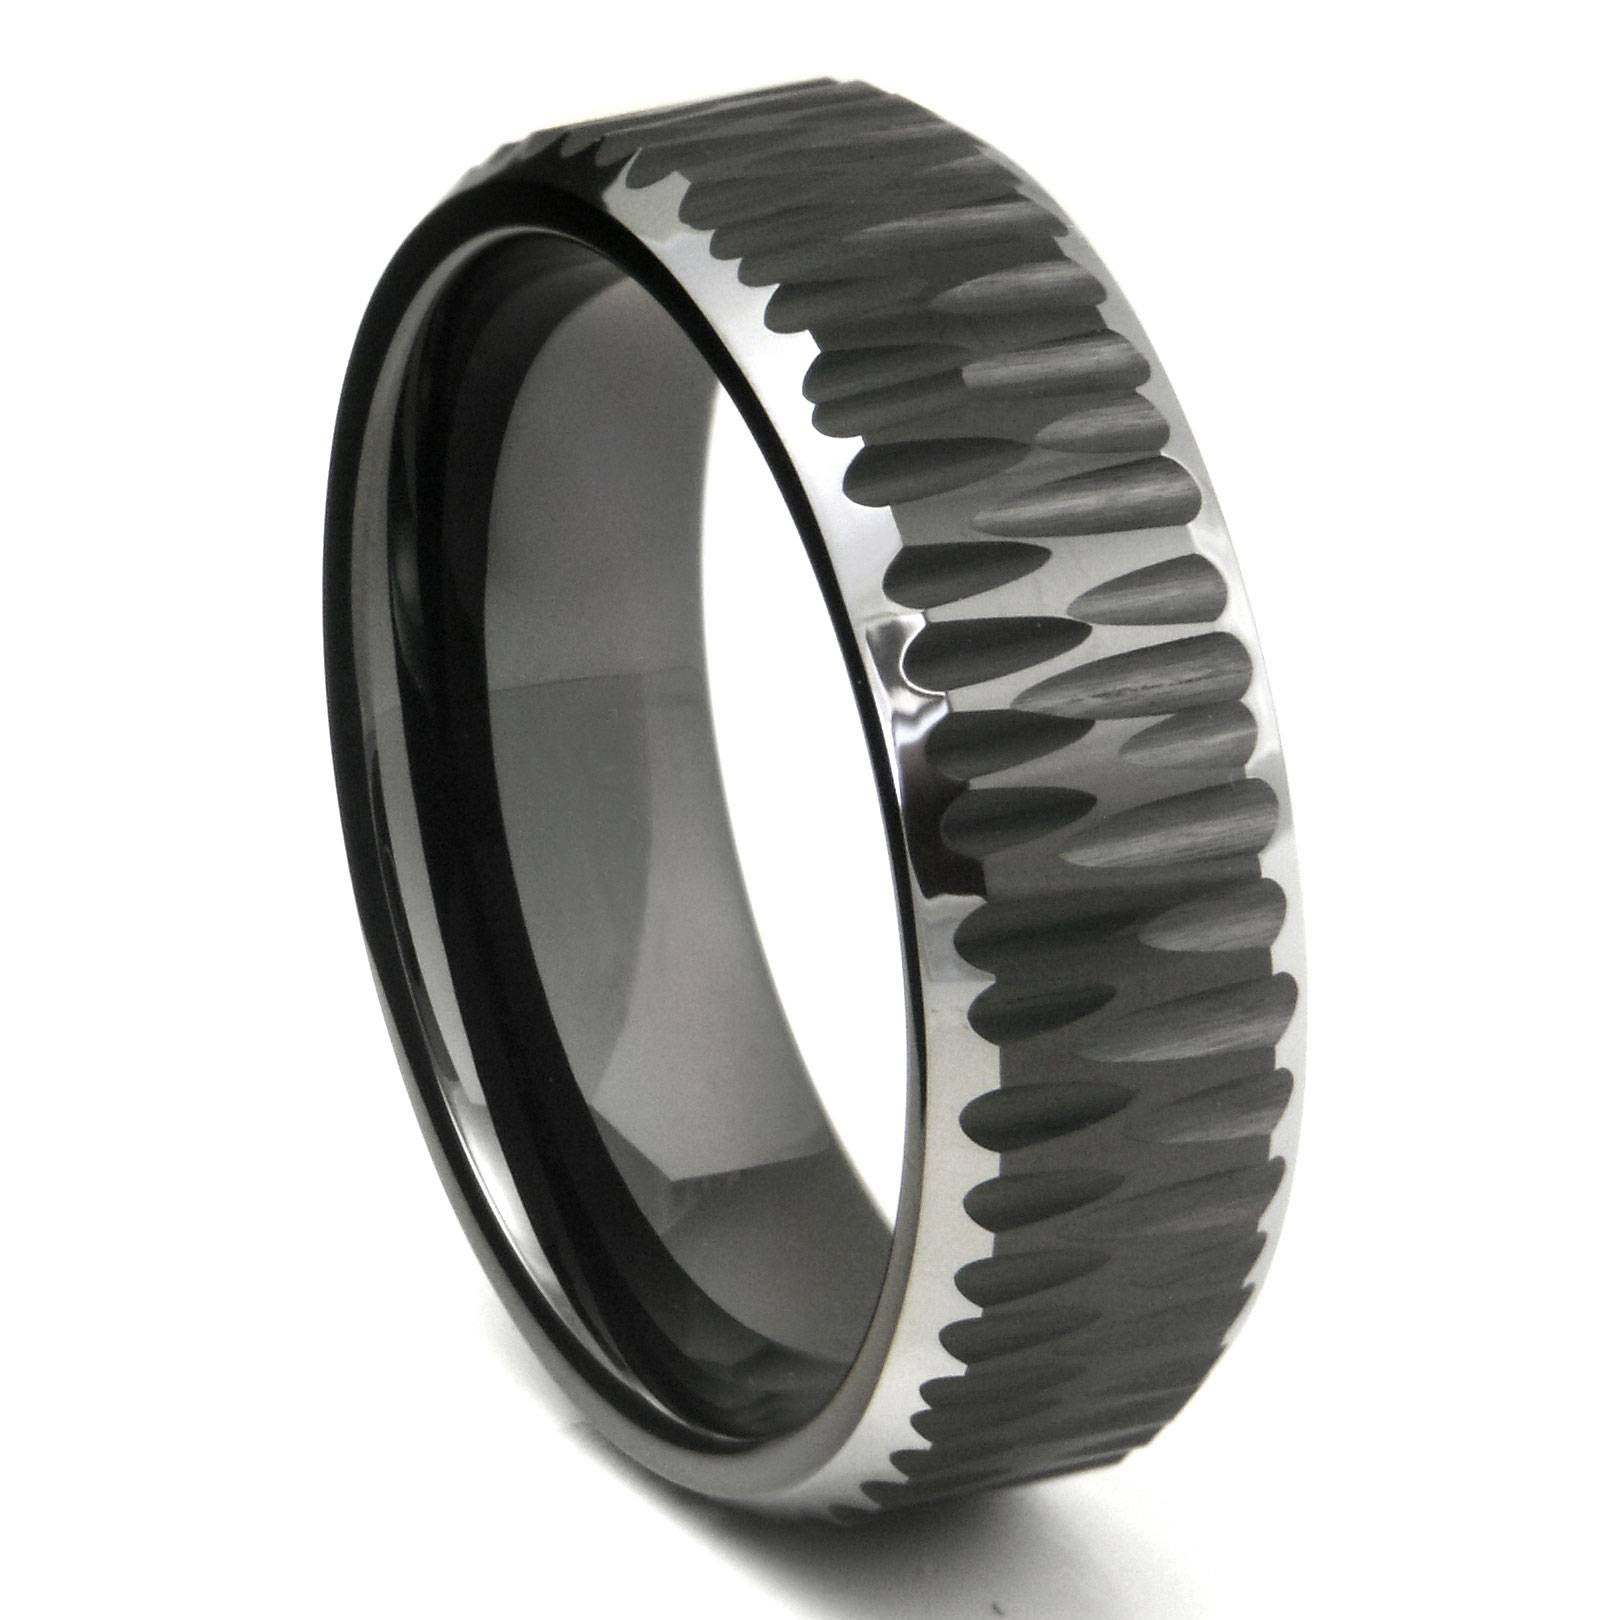 Black Tungsten Carbide Hammer Finish Beveled Wedding Band Ring With Regard To Unique Tungsten Wedding Rings (View 7 of 15)